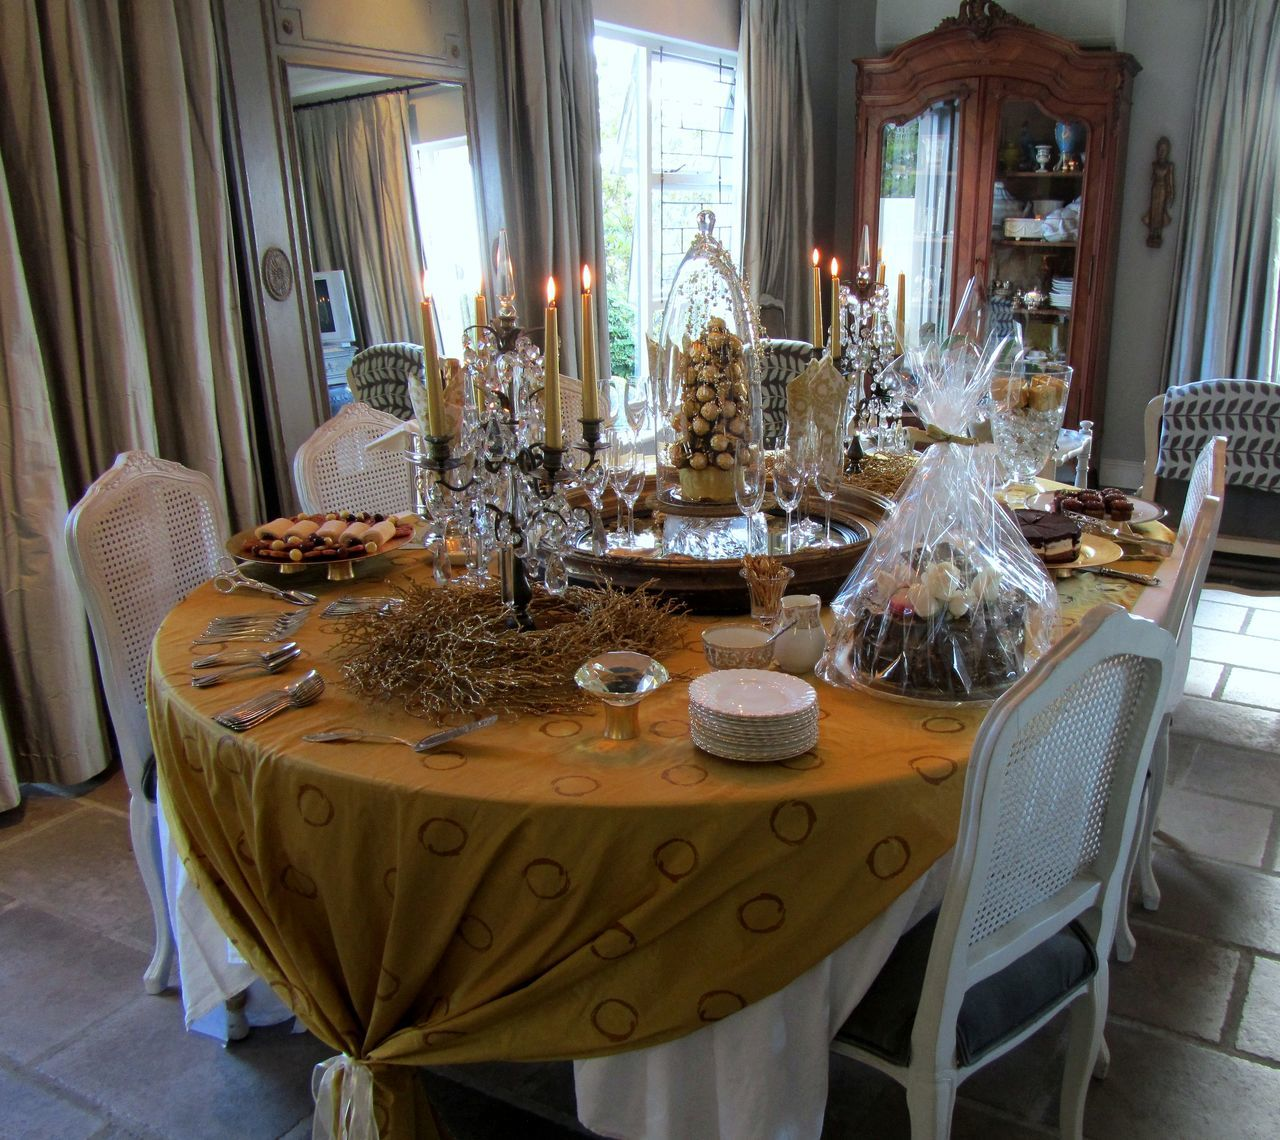 Golden Visual Feast ~ Architecture Candle Light Chair Curtain Day Dessert Dining Room Dining Table Drinking Glass Elégance Food Furniture Gold Colored Golden Home Interior Indoors  Luxury Napkin No People Place Setting Table Table Setting Tablecloth Visual Feast Wineglass